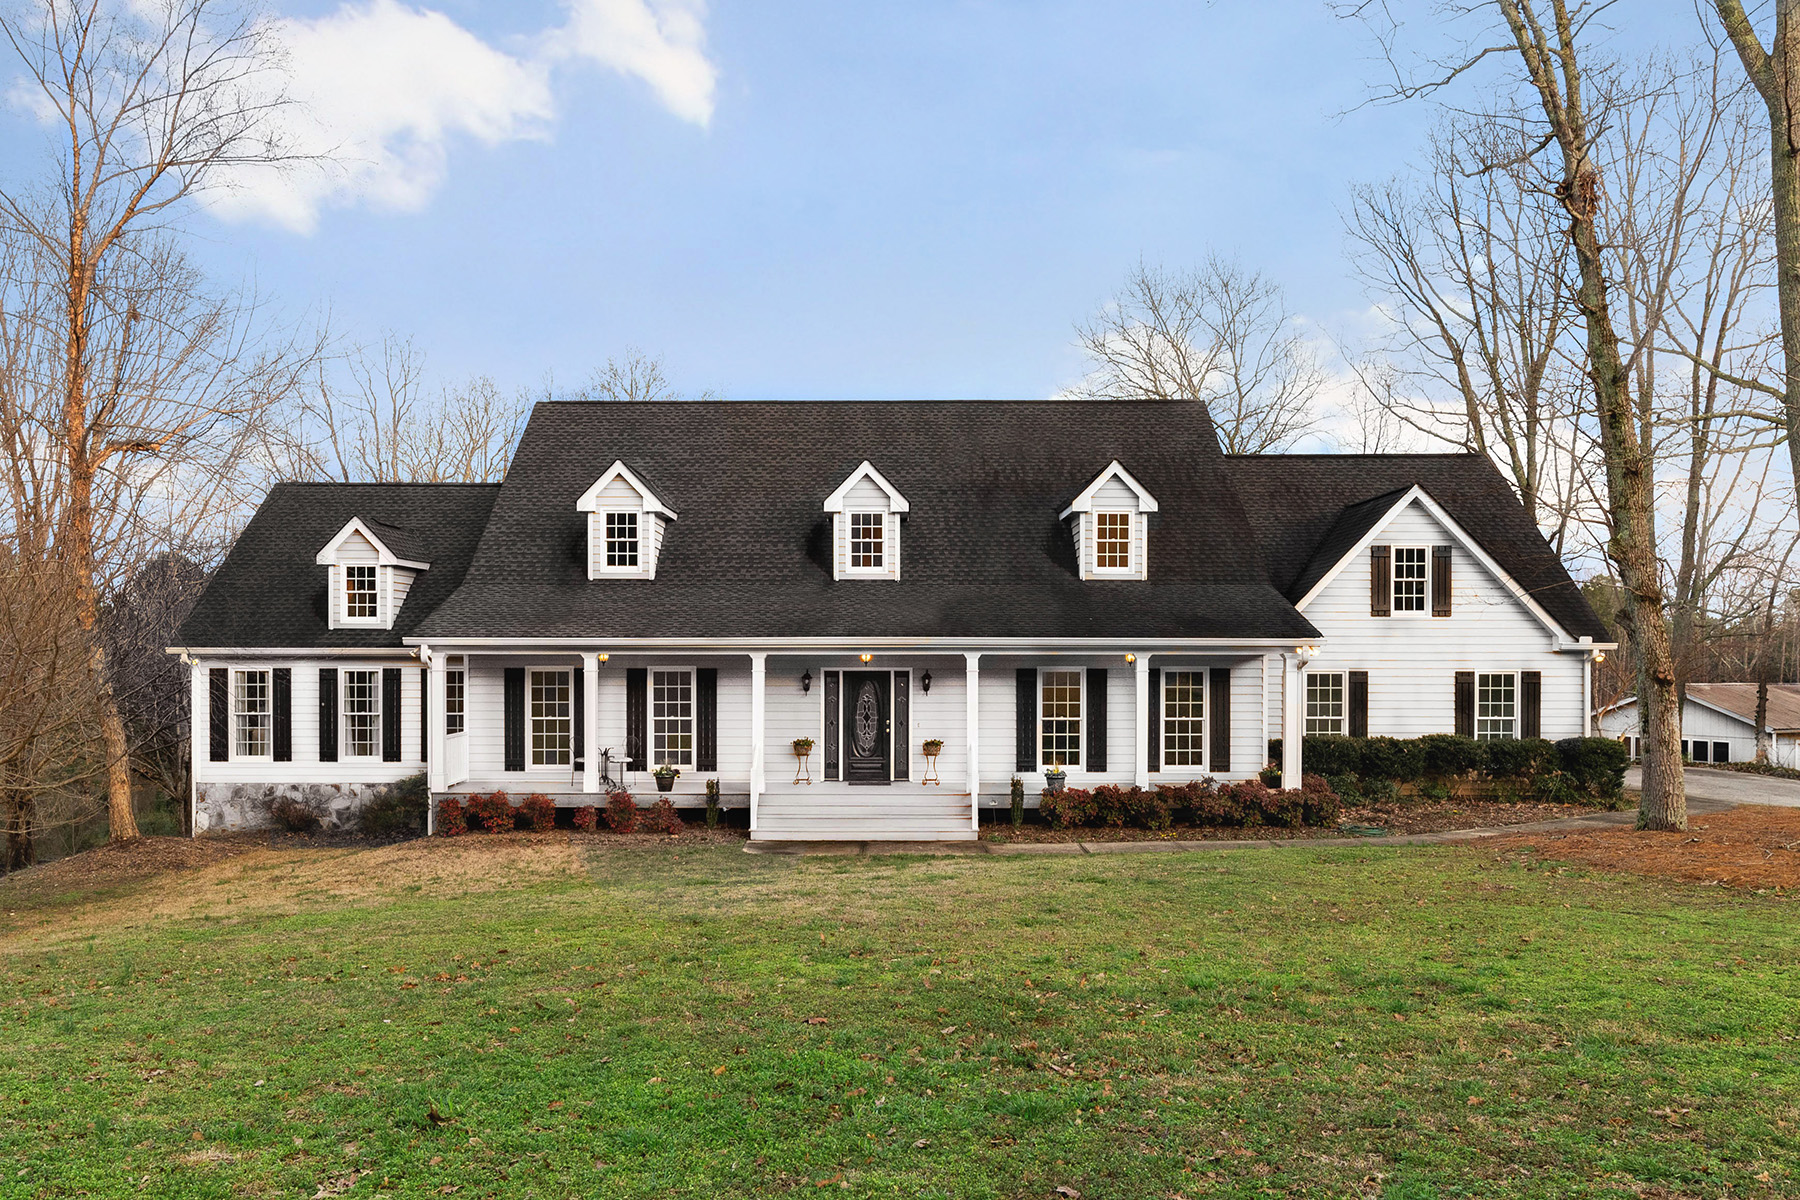 Single Family Homes for Sale at Magnolia Farm, A Private Equestrian Estate 616 Mountain Road Woodstock, Georgia 30188 United States